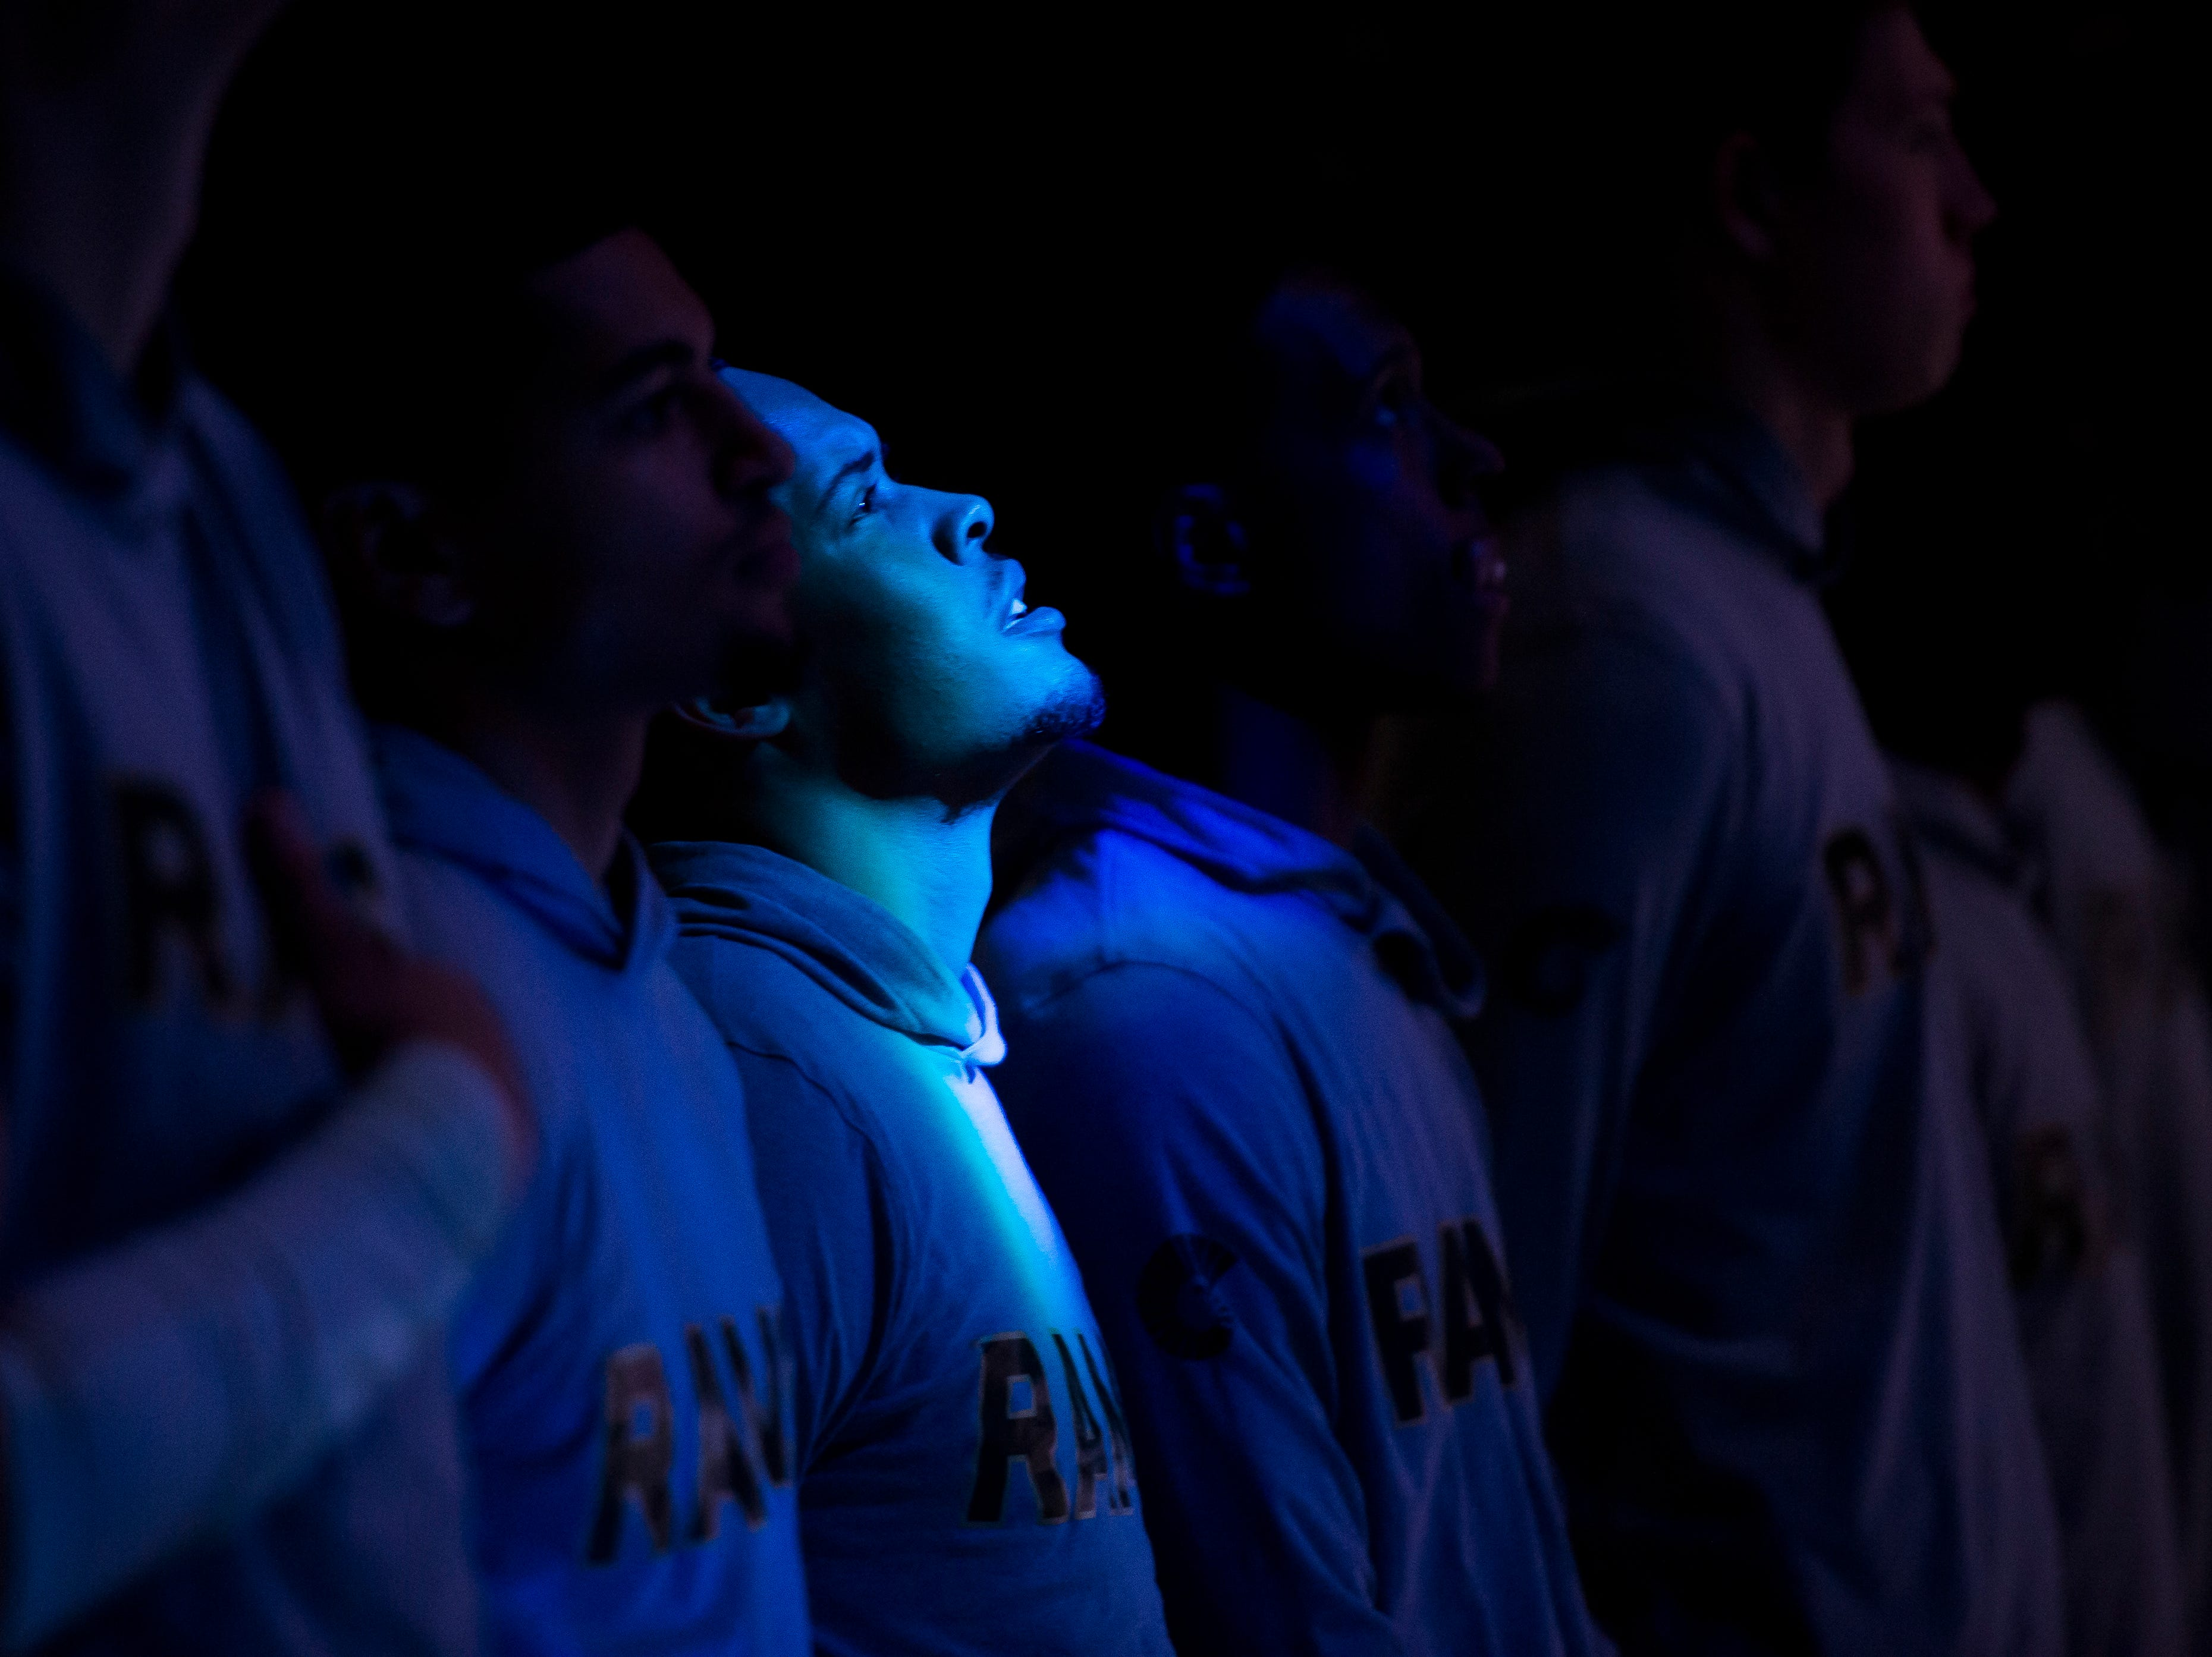 Colorado State University junior guard Juan Sabino II (12) looks up during the national anthem before a game against Colorado Christian University on Wednesday, Nov. 7, 2018, at Moby Arena in Fort Collins, Colo.